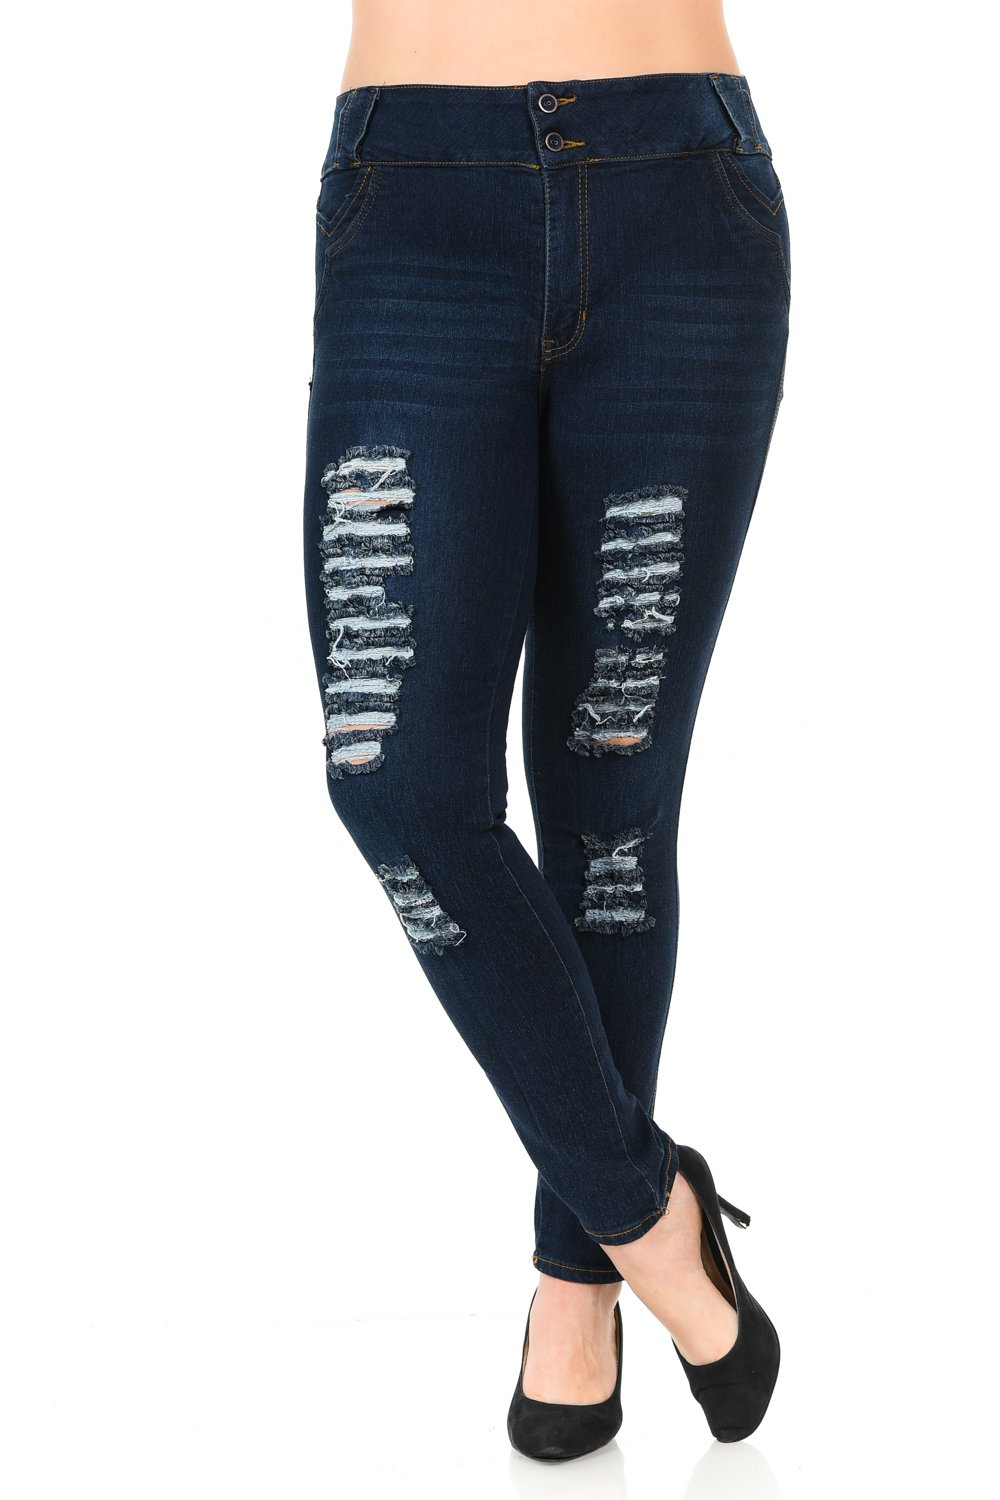 Pasion Women's Jeans - Plus Size - High Waist - Push Up - Style N402B-R - Navy - Size 26